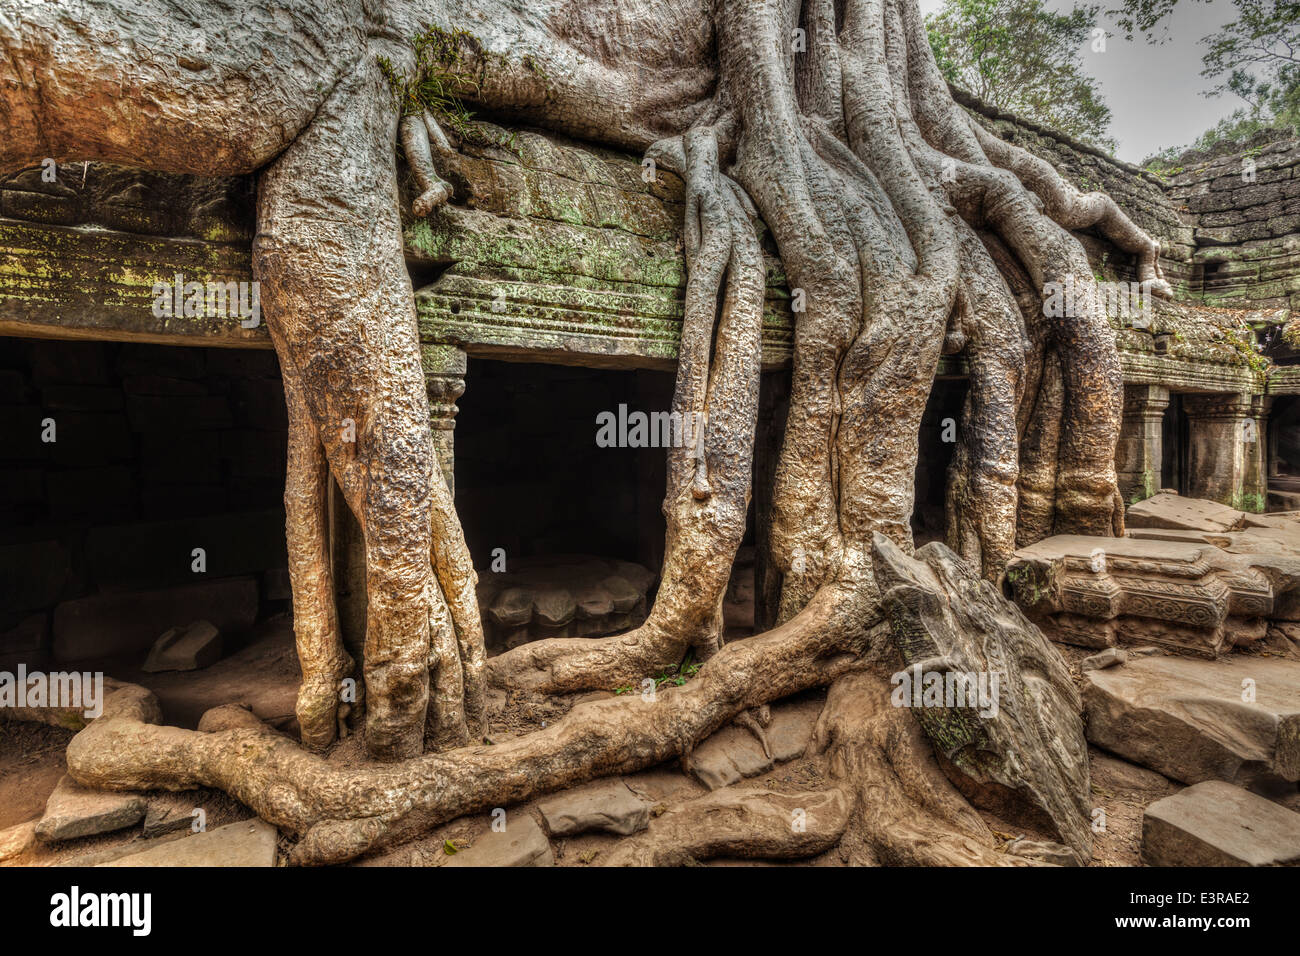 High dynamic range (hdr) image of ancient ruins with tree roots, Ta Prohm temple ruins, Angkor, Cambodia - Stock Image